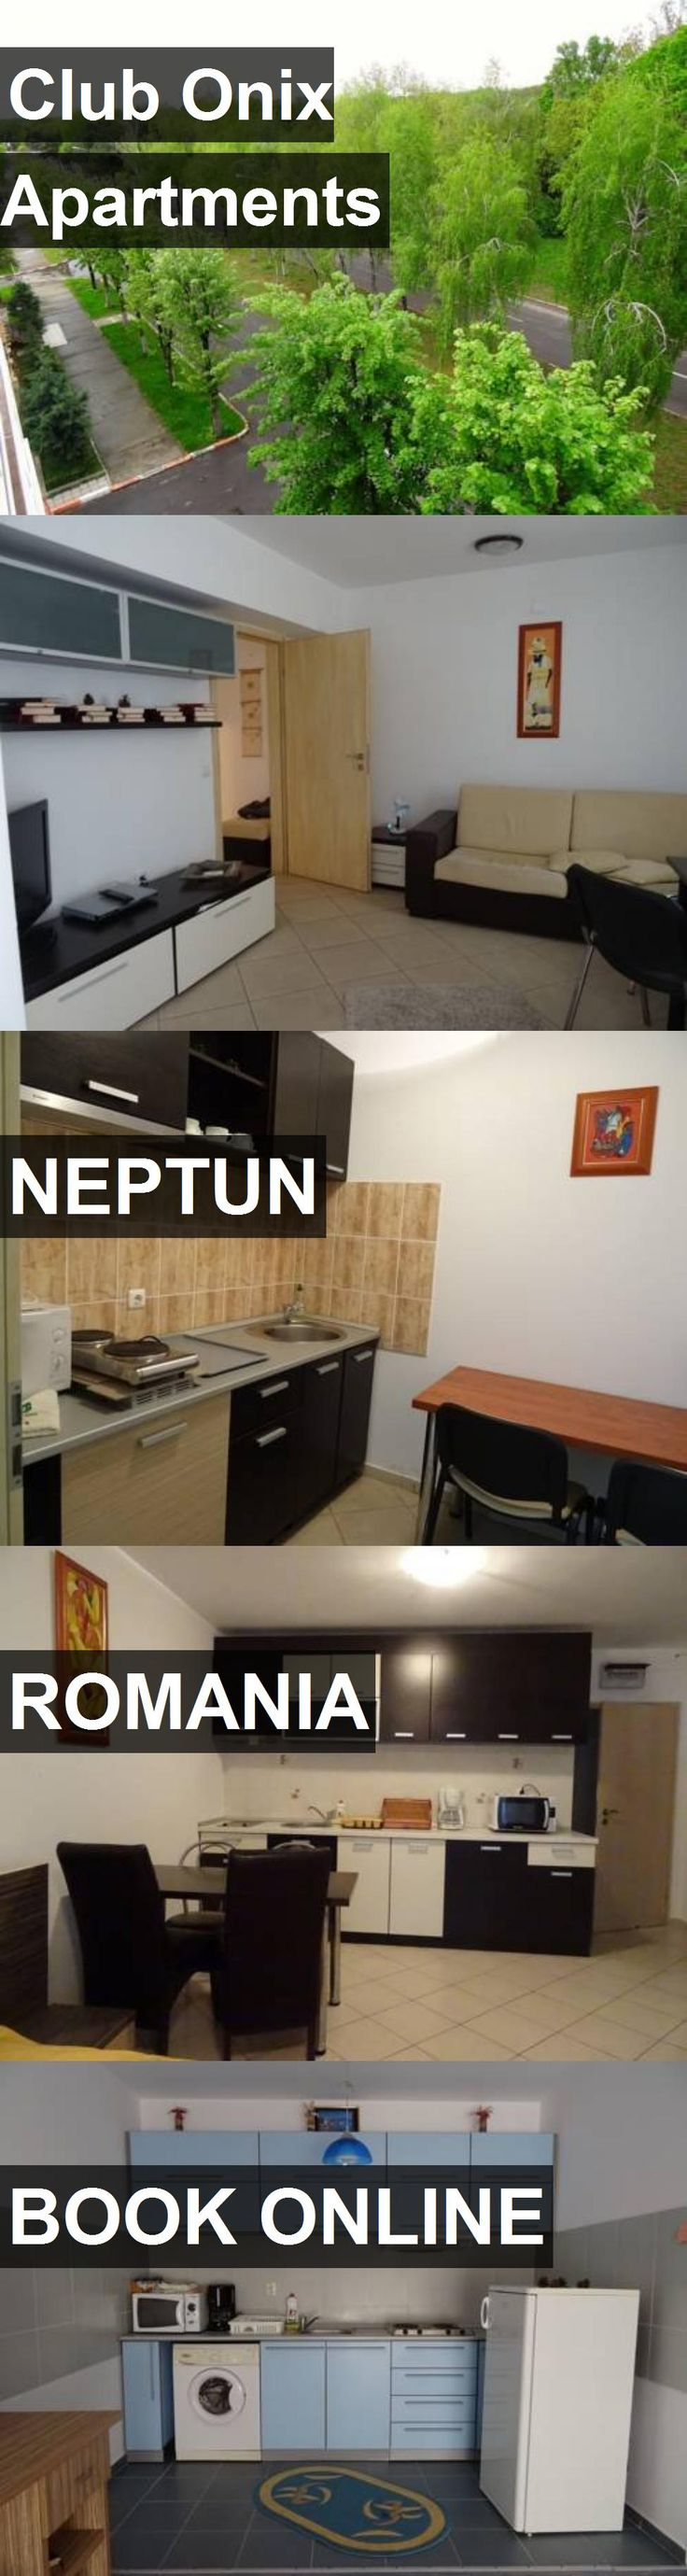 Club Onix Apartments in Neptun, Romania. For more information, photos, reviews and best prices please follow the link. #Romania #Neptun #travel #vacation #apartment